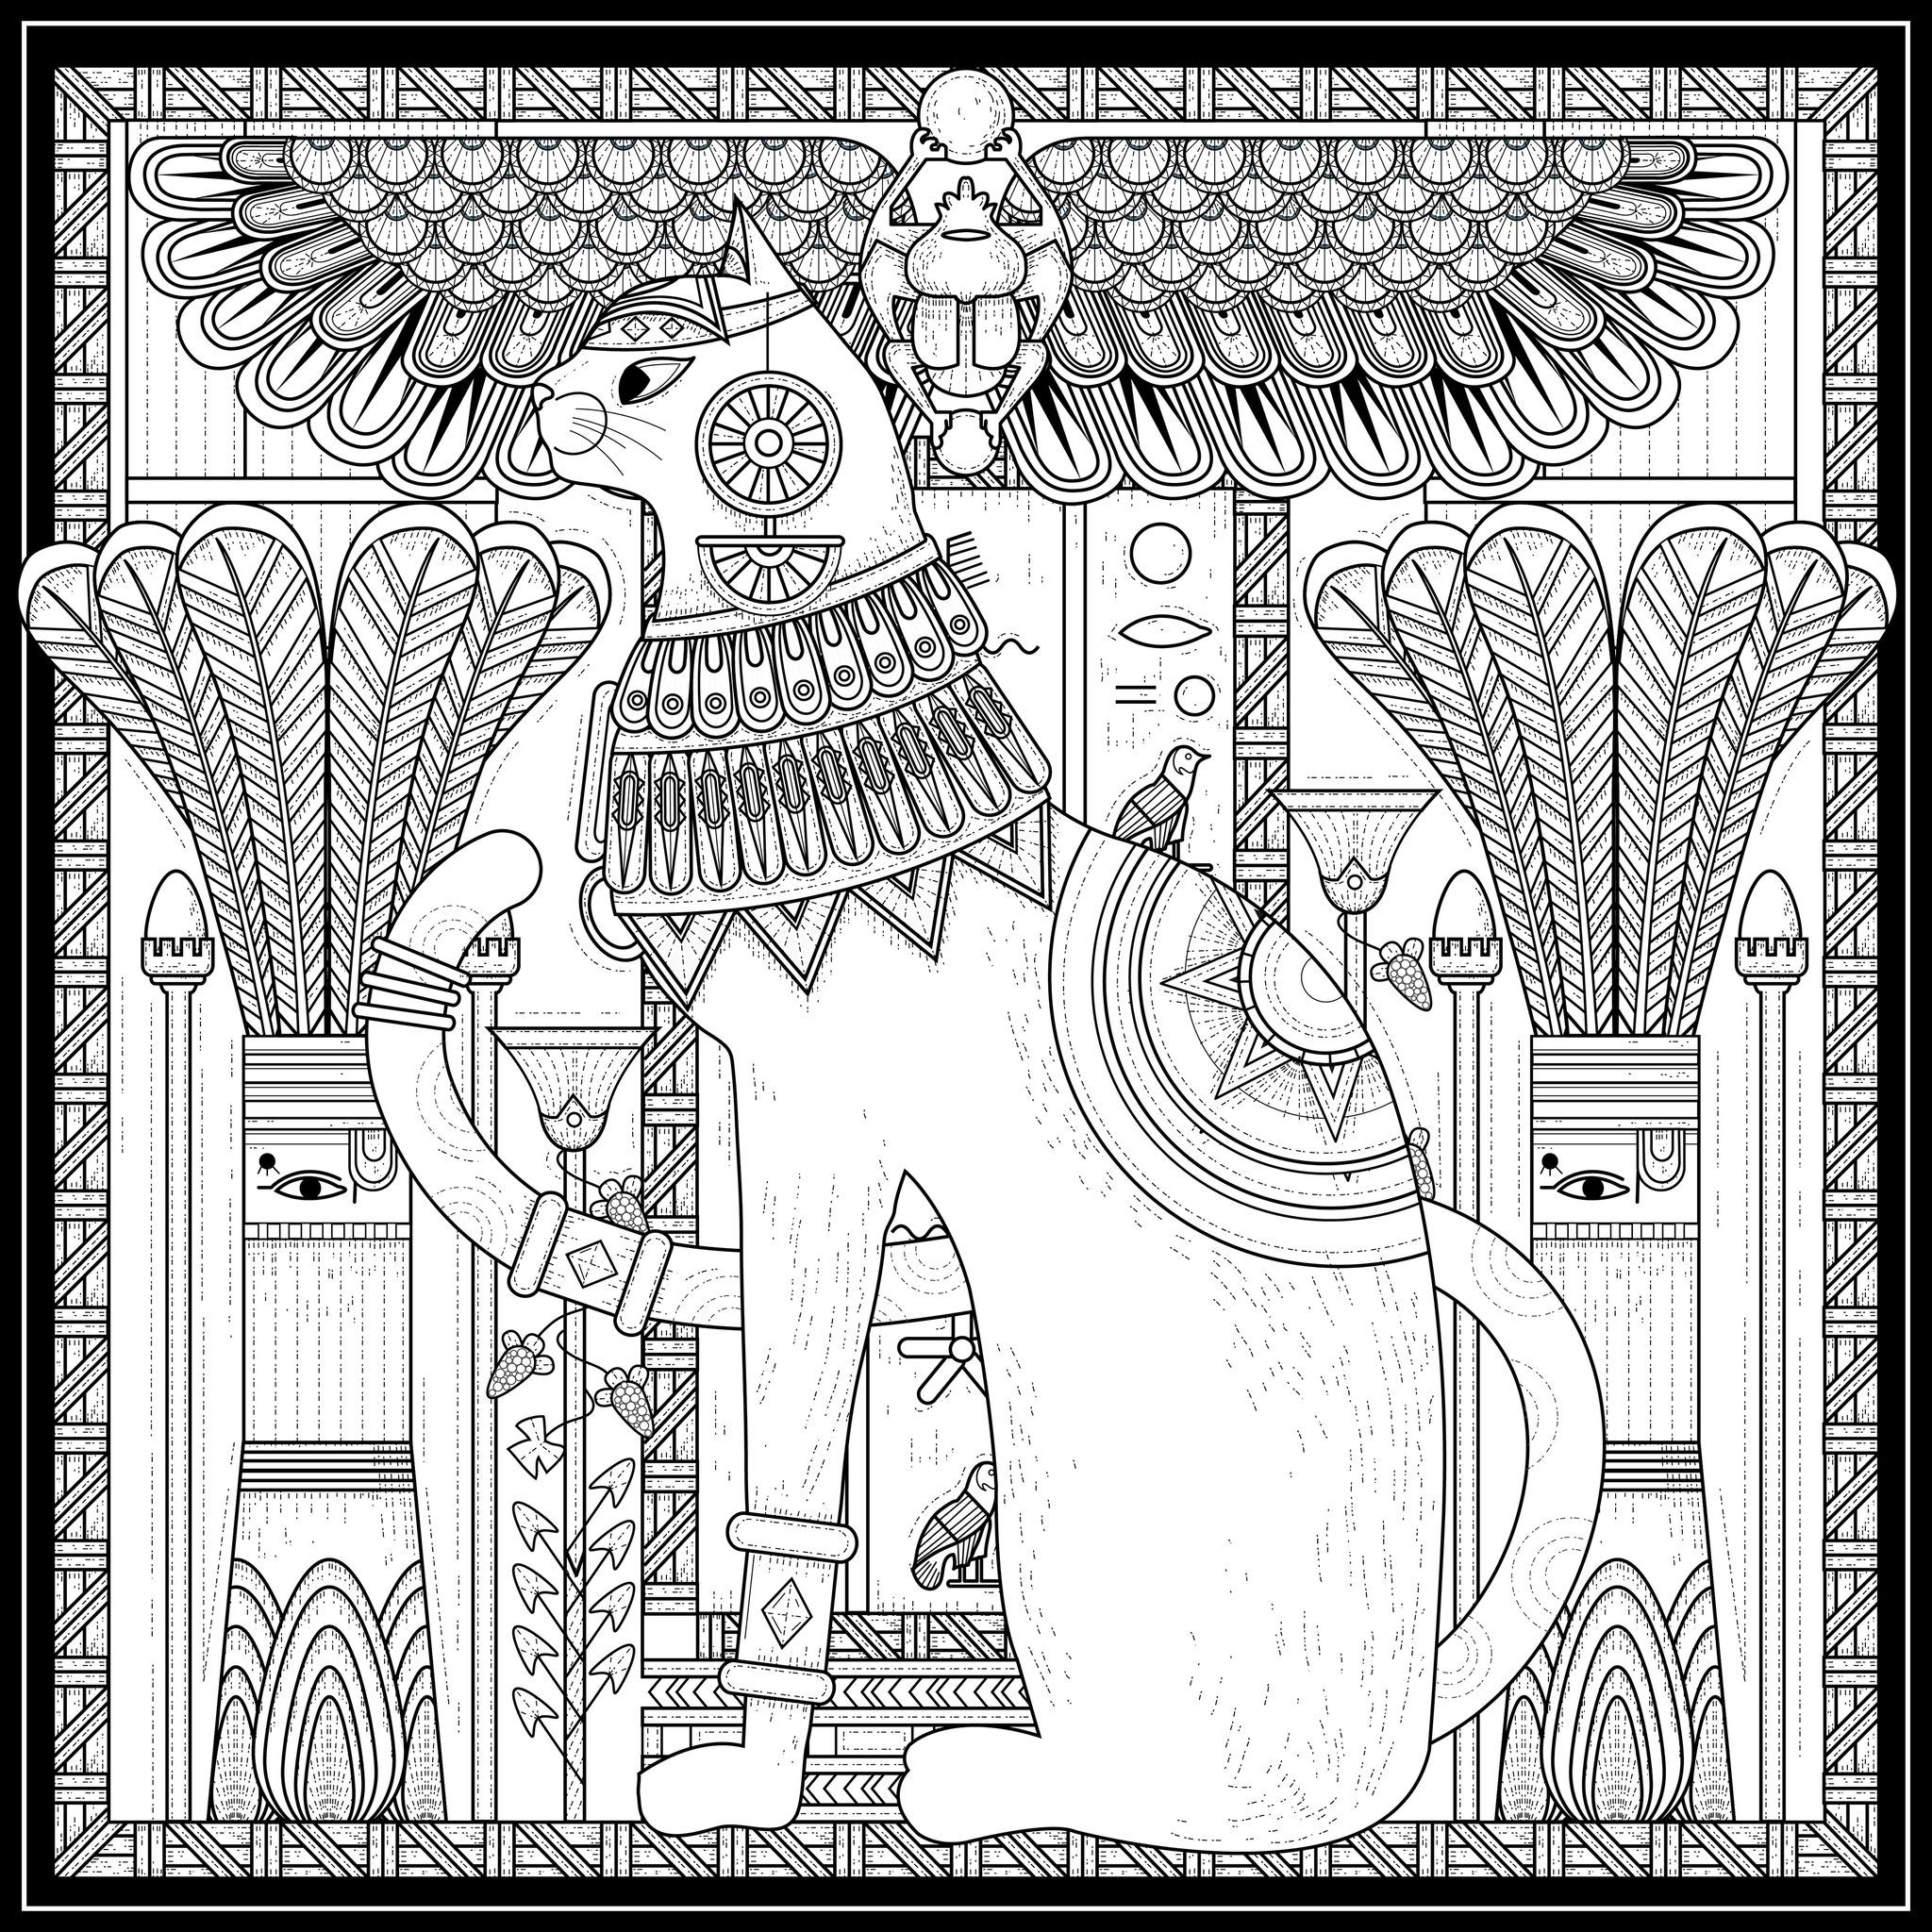 cleopatra coloring page free cleopatra coloring pages tripafethna coloring cleopatra page